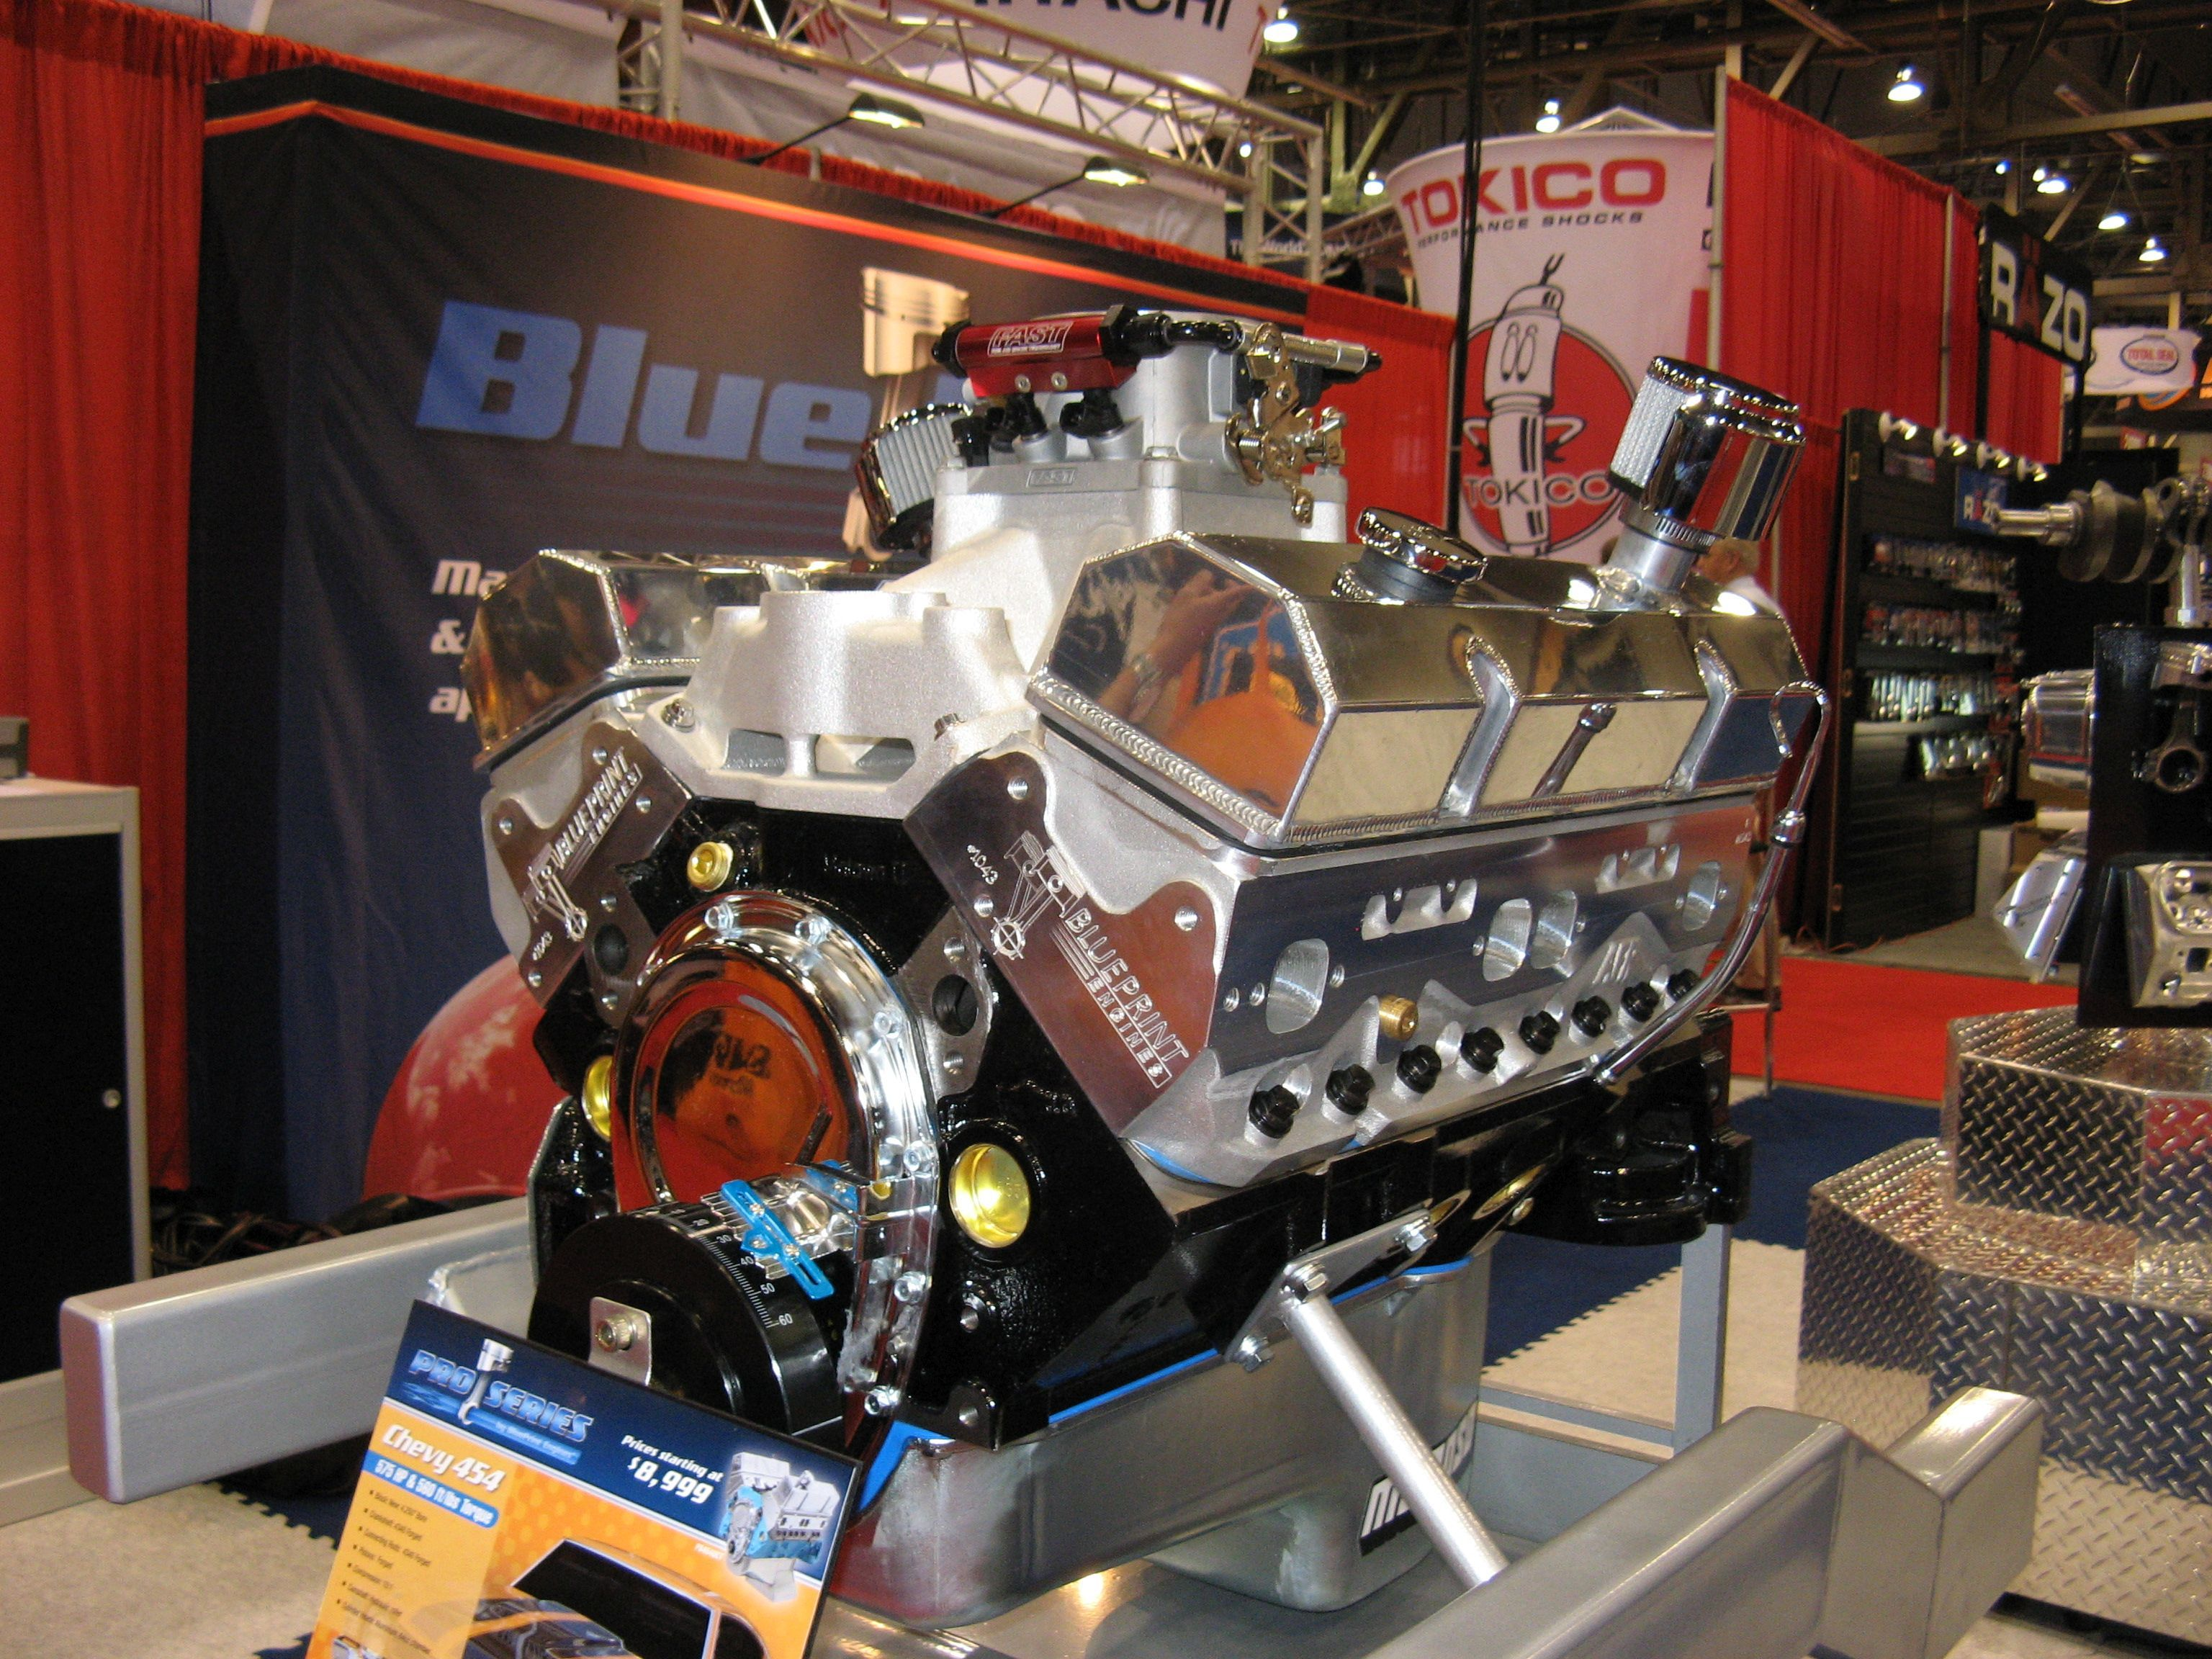 Blueprint engines engine featured at one of the sema tradeshows of blueprint engines engine featured at one of the sema tradeshows of years past blueprintengines sema malvernweather Gallery